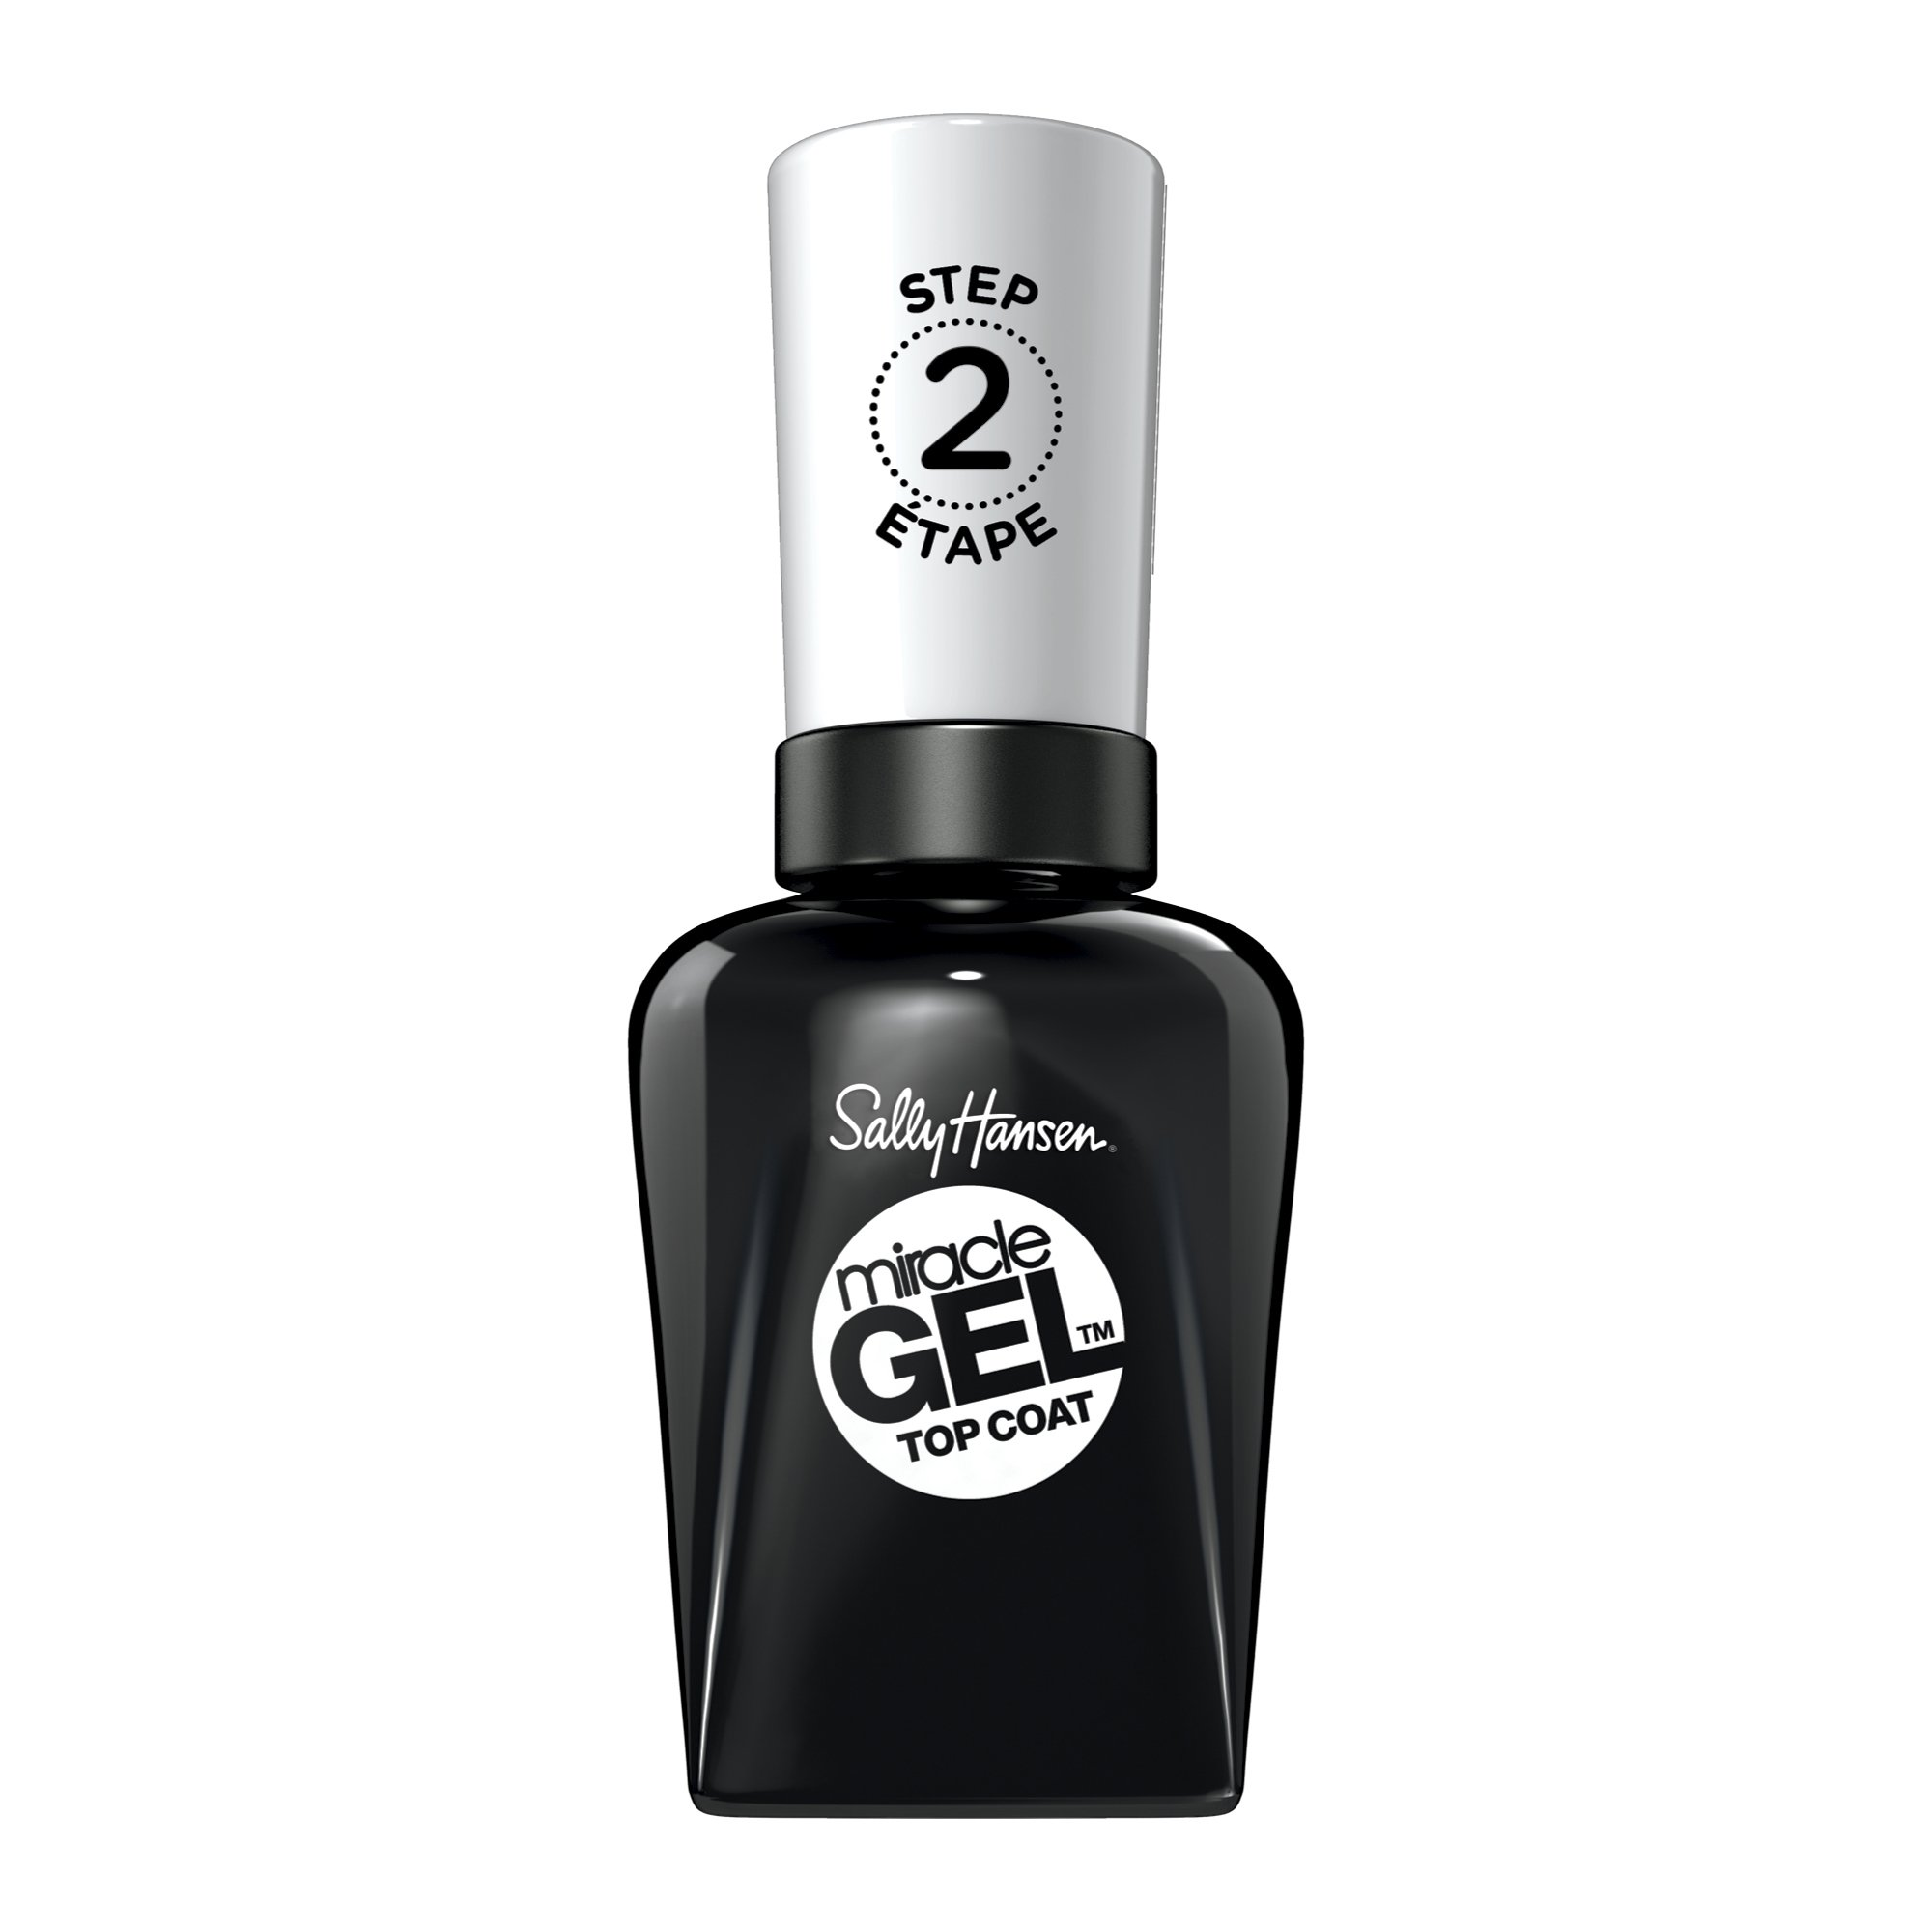 Sally Hansen Miracle Gel Nail Polish, Top Coat 0.5 Ounce No UV Lamp Required Gel Nail Polish Chip Resistant Polish Long-lasting